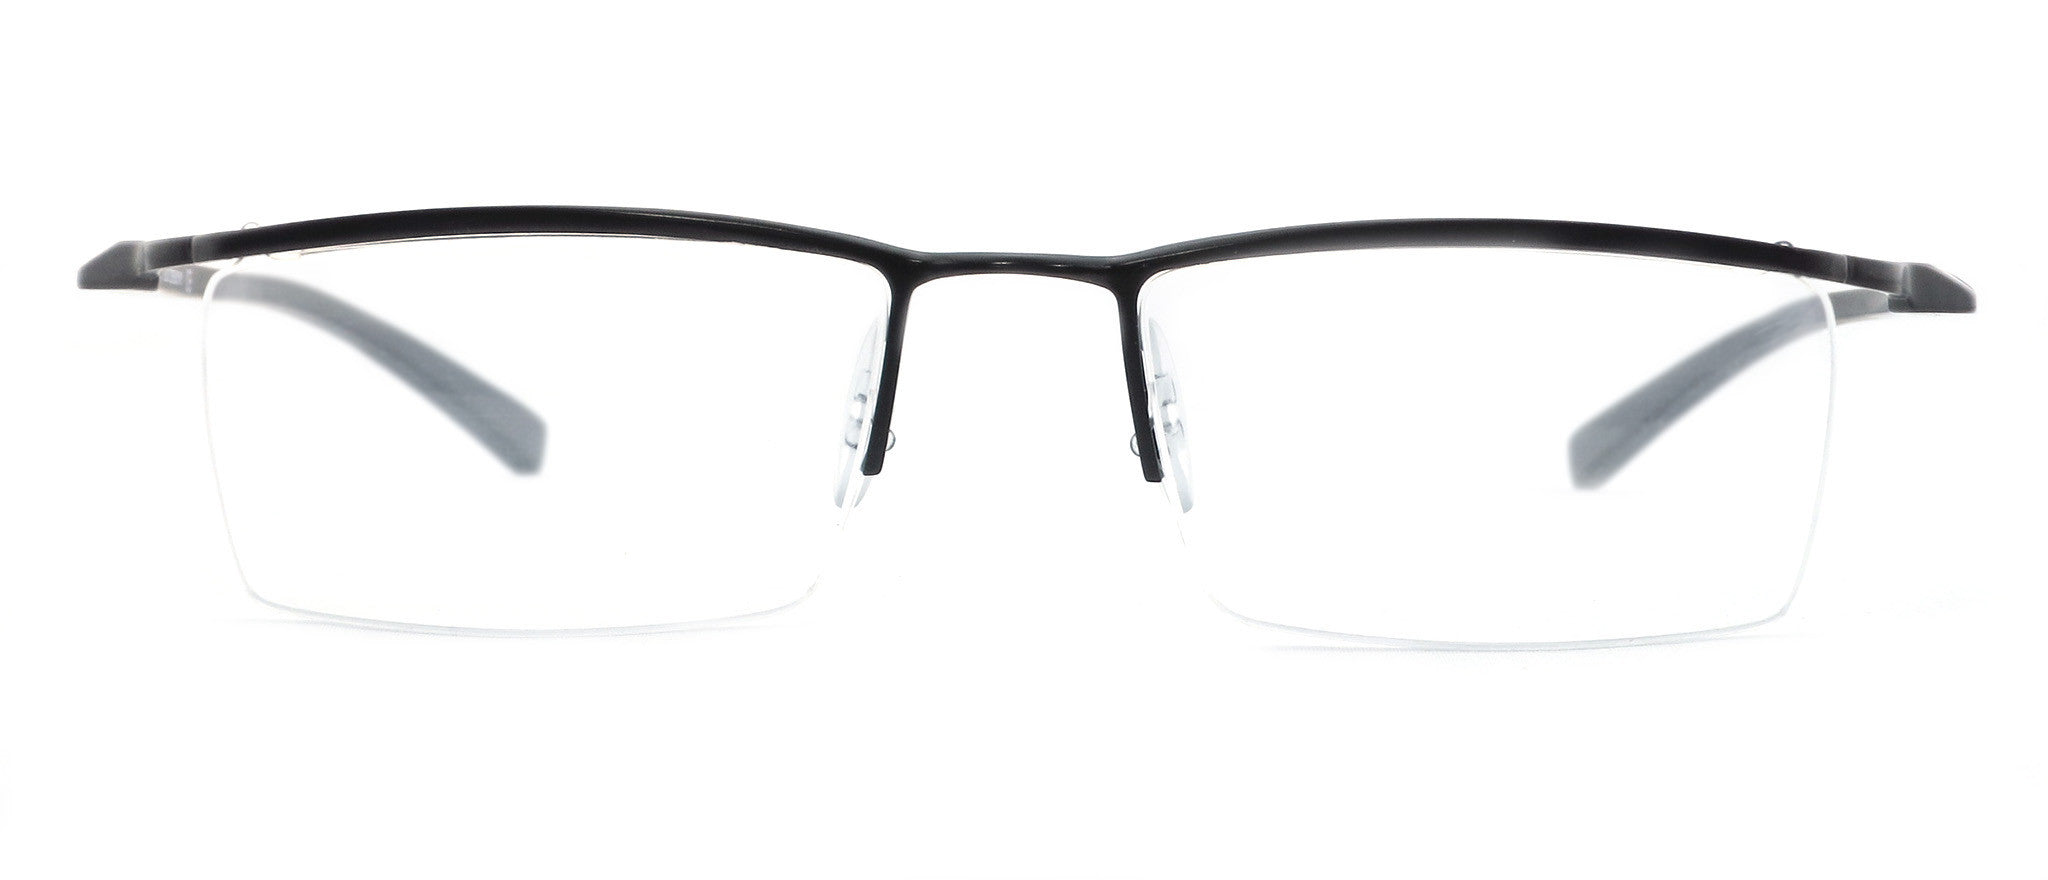 How to Find Your Glasses Fit Your Face Shape